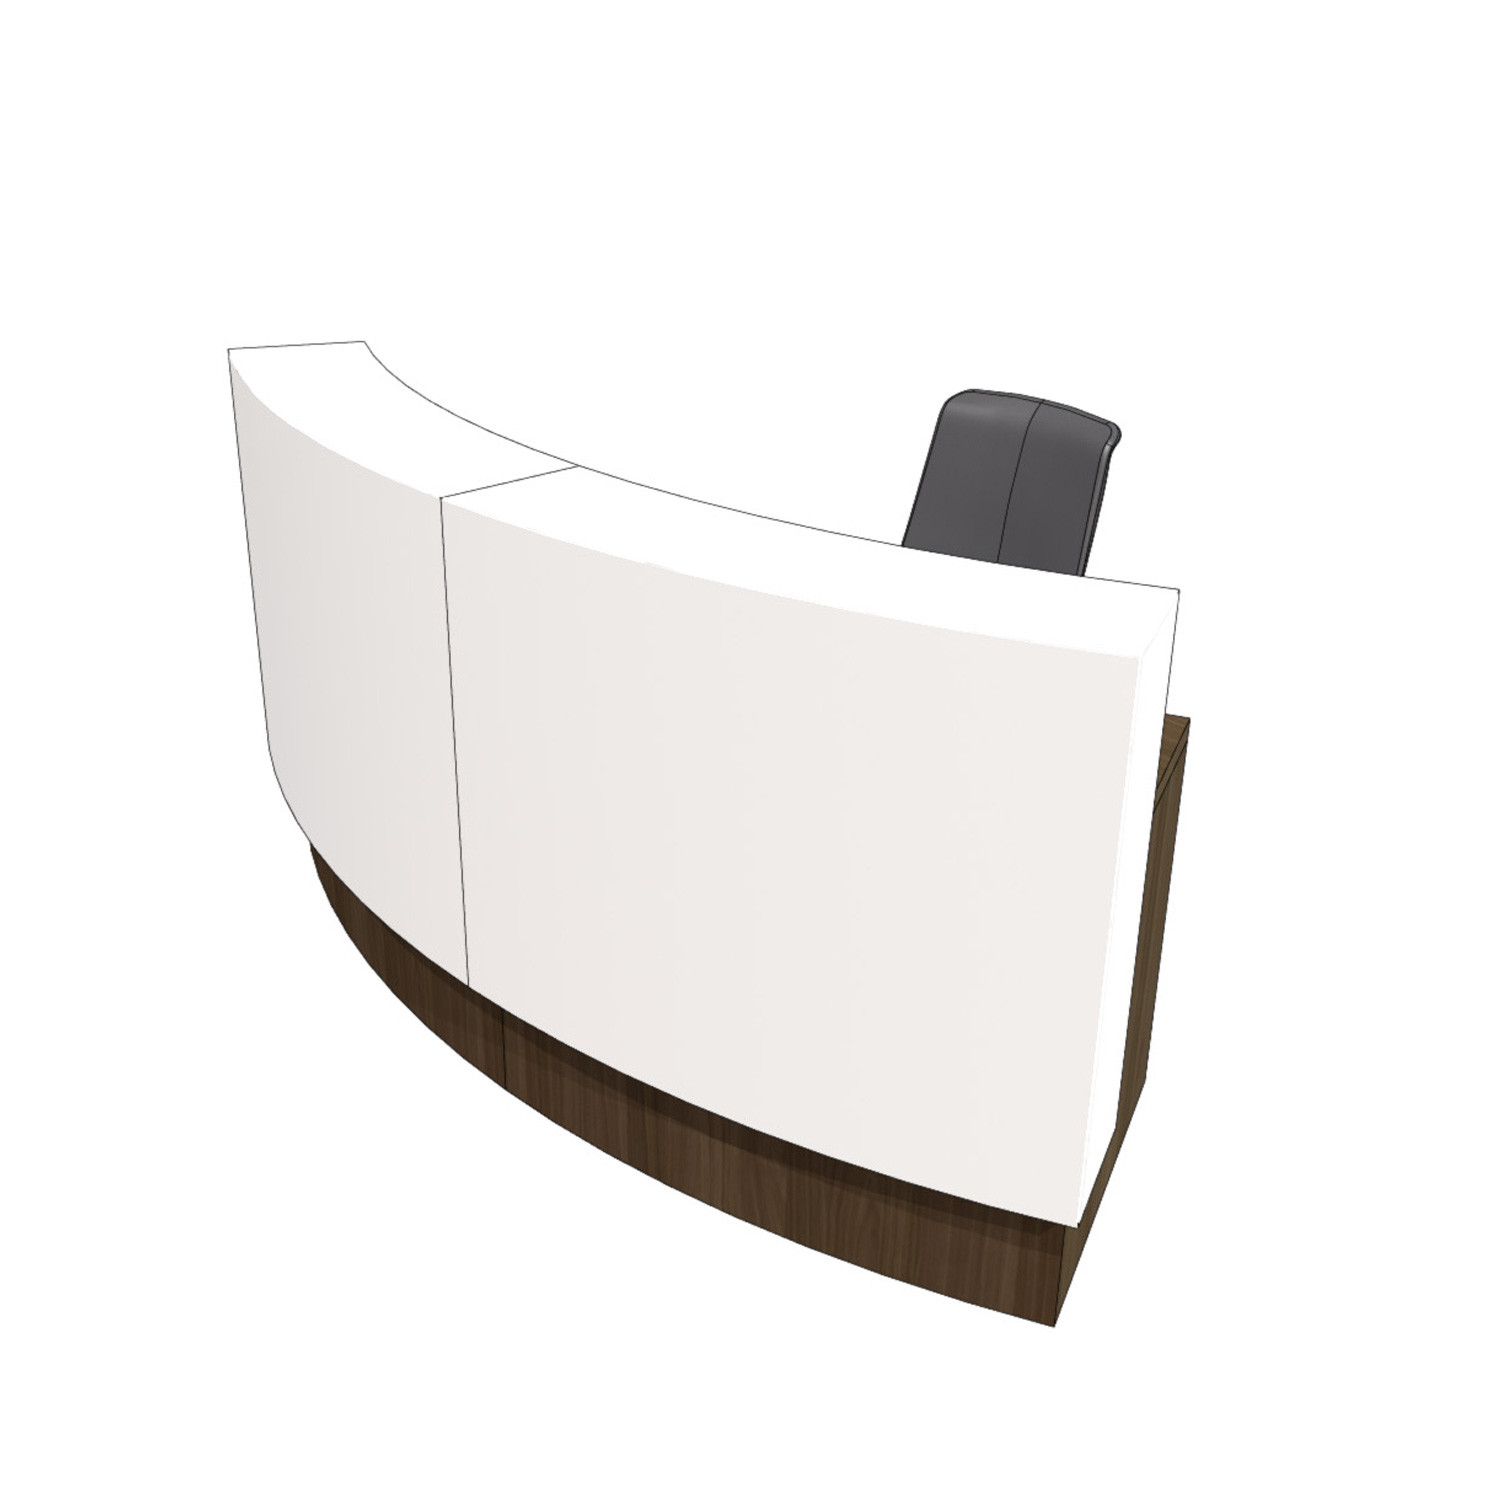 Evoke KB1 Reception Desk